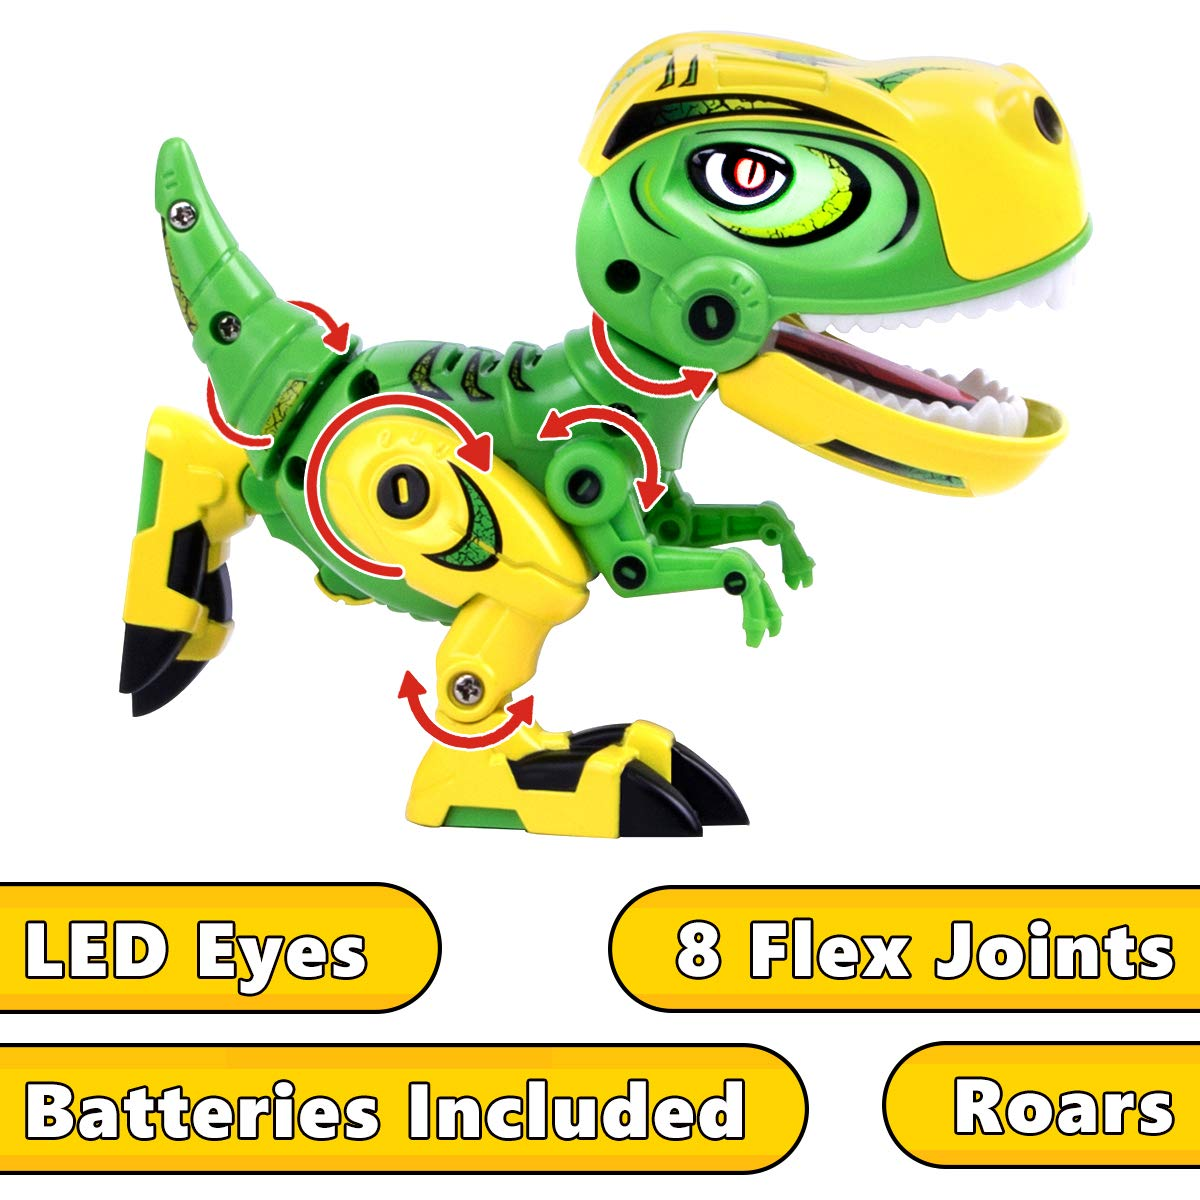 GILOBABY Dinosaur Toys for Kids, Alloy Metal Mini Tyrannosaurus Rex Dinosaur with Shine Eyes and Roaring Sound, Flexible Body, Gift for Toddlers Boys Girls (Green) by GILOBABY (Image #2)